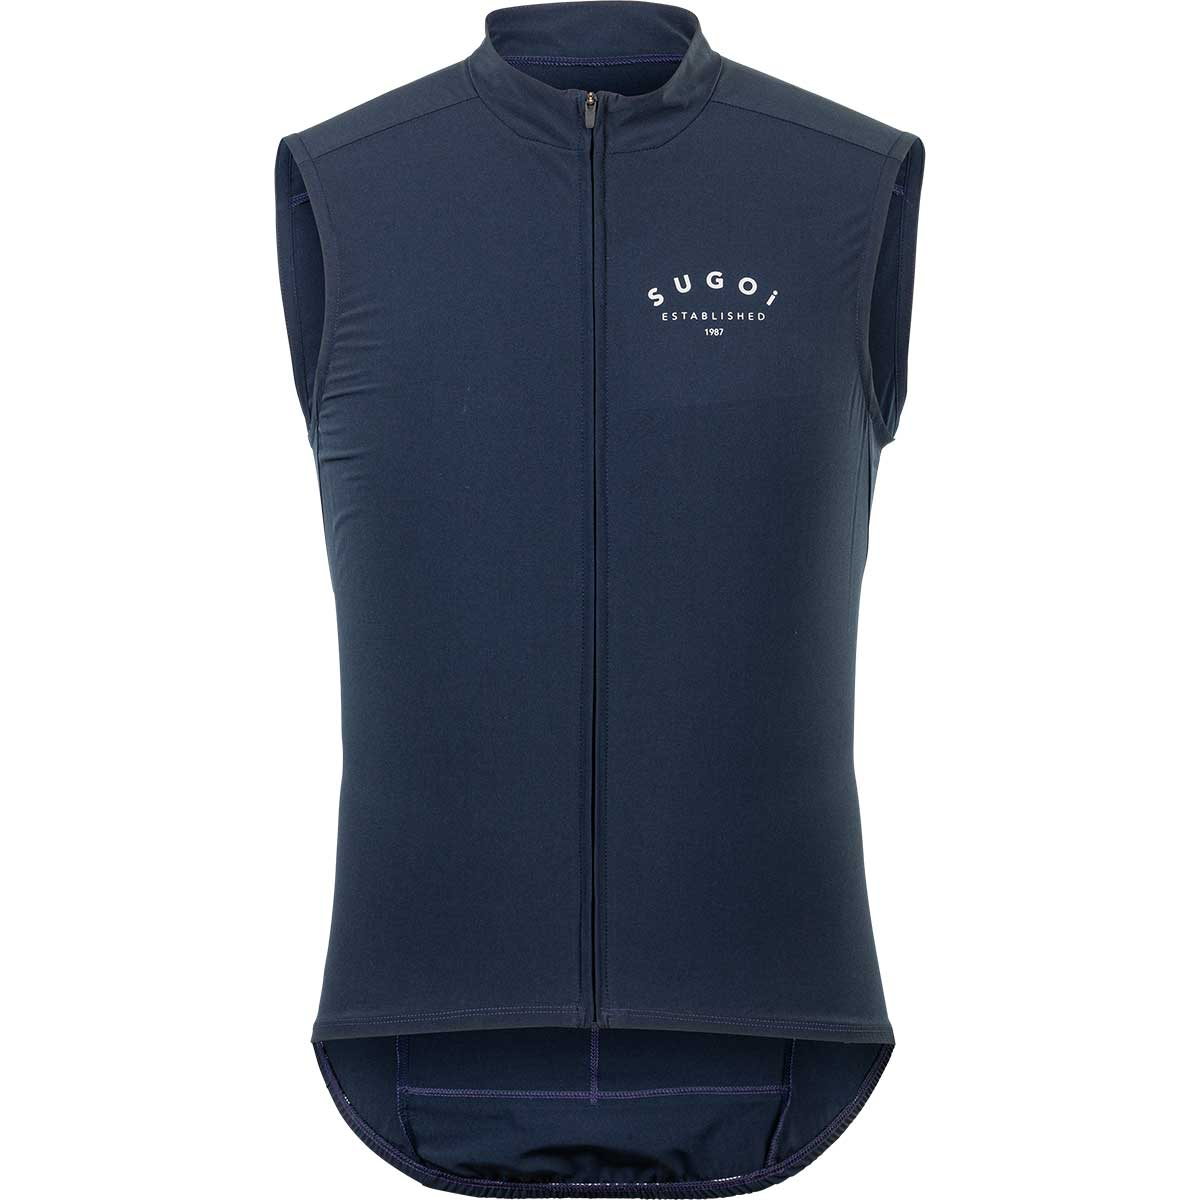 Sugoi men's RS Pro Vest in Deep Navy